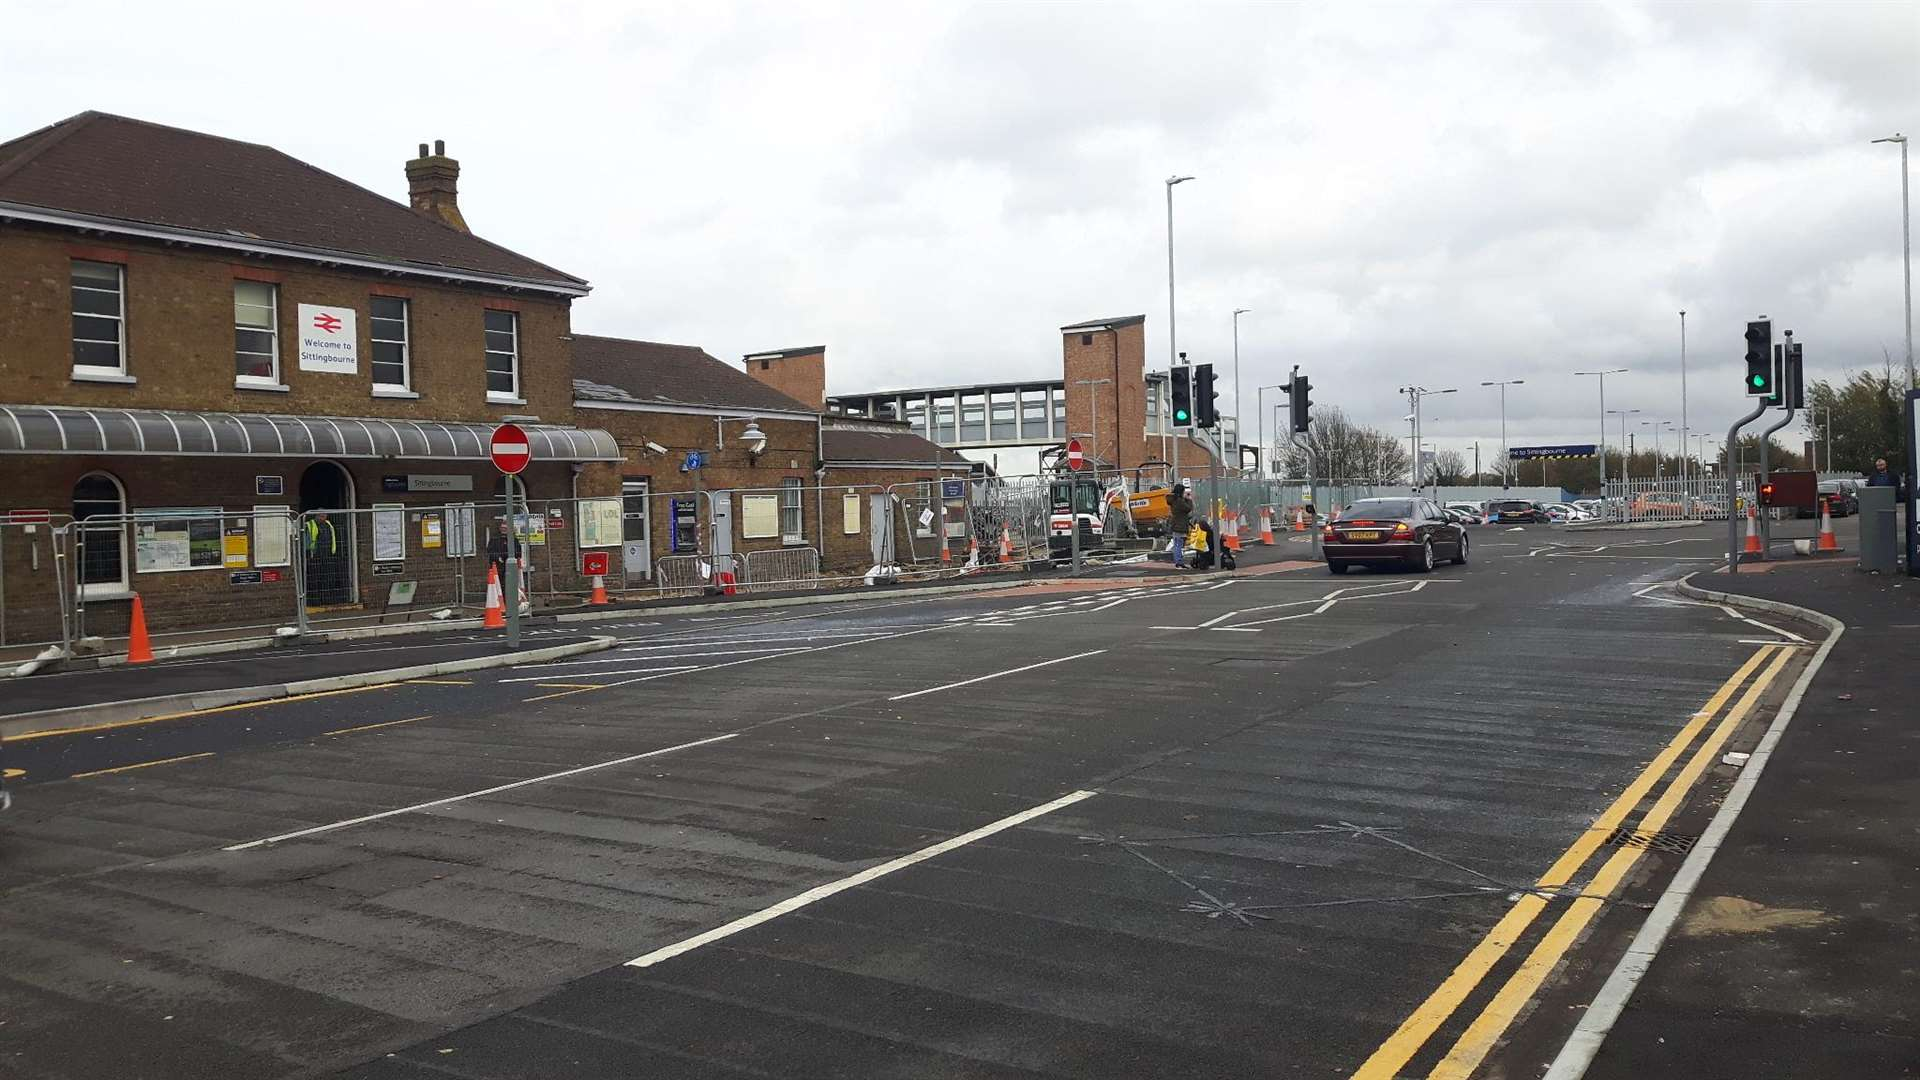 The new road layout in from of Sittingbourne Train Station